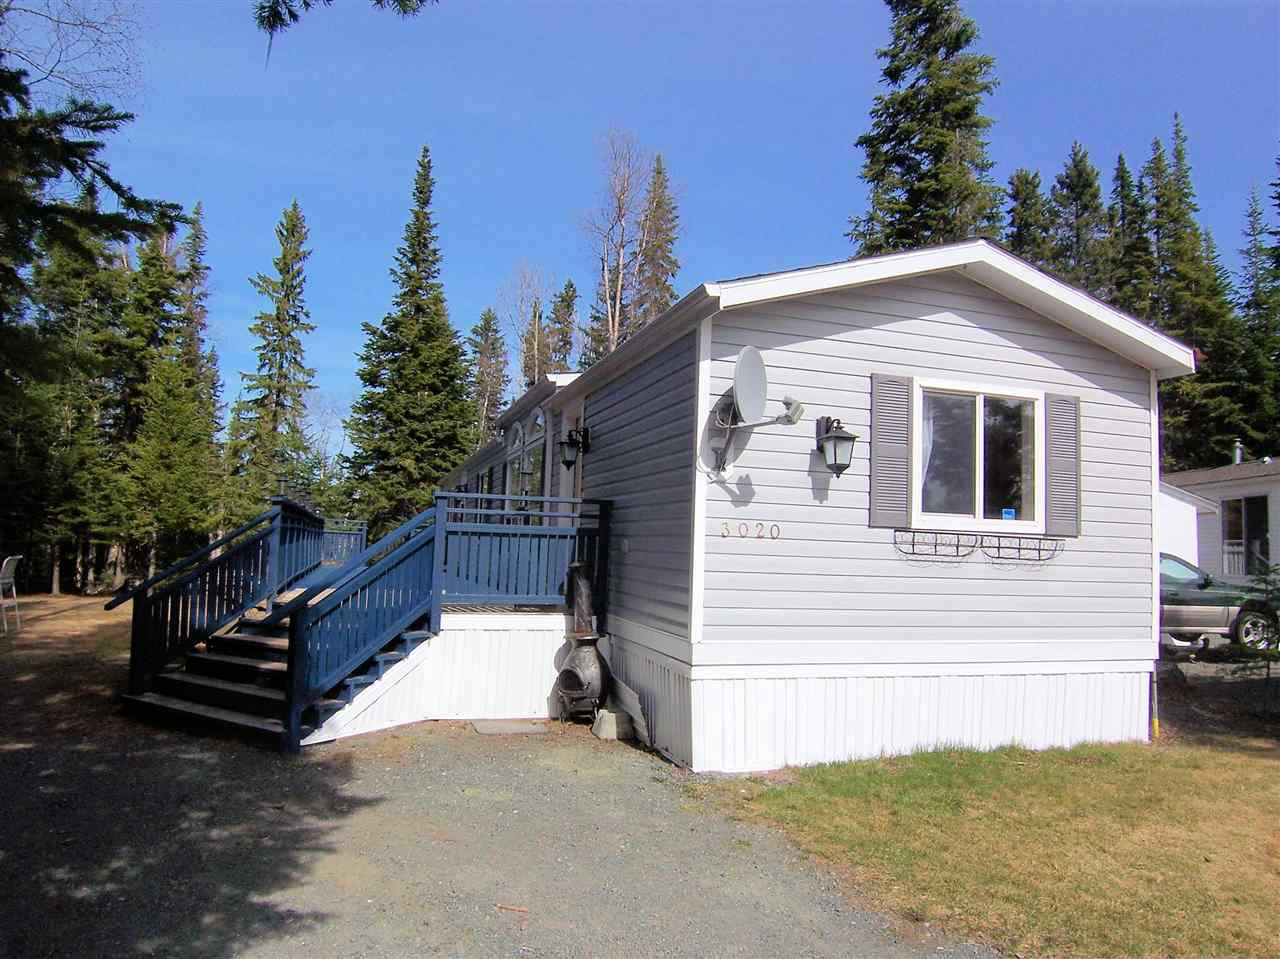 """Main Photo: 3020 THEE Place in Prince George: Emerald Manufactured Home for sale in """"GREENFOREST CRESCENT / THEE"""" (PG City North (Zone 73))  : MLS®# R2040363"""